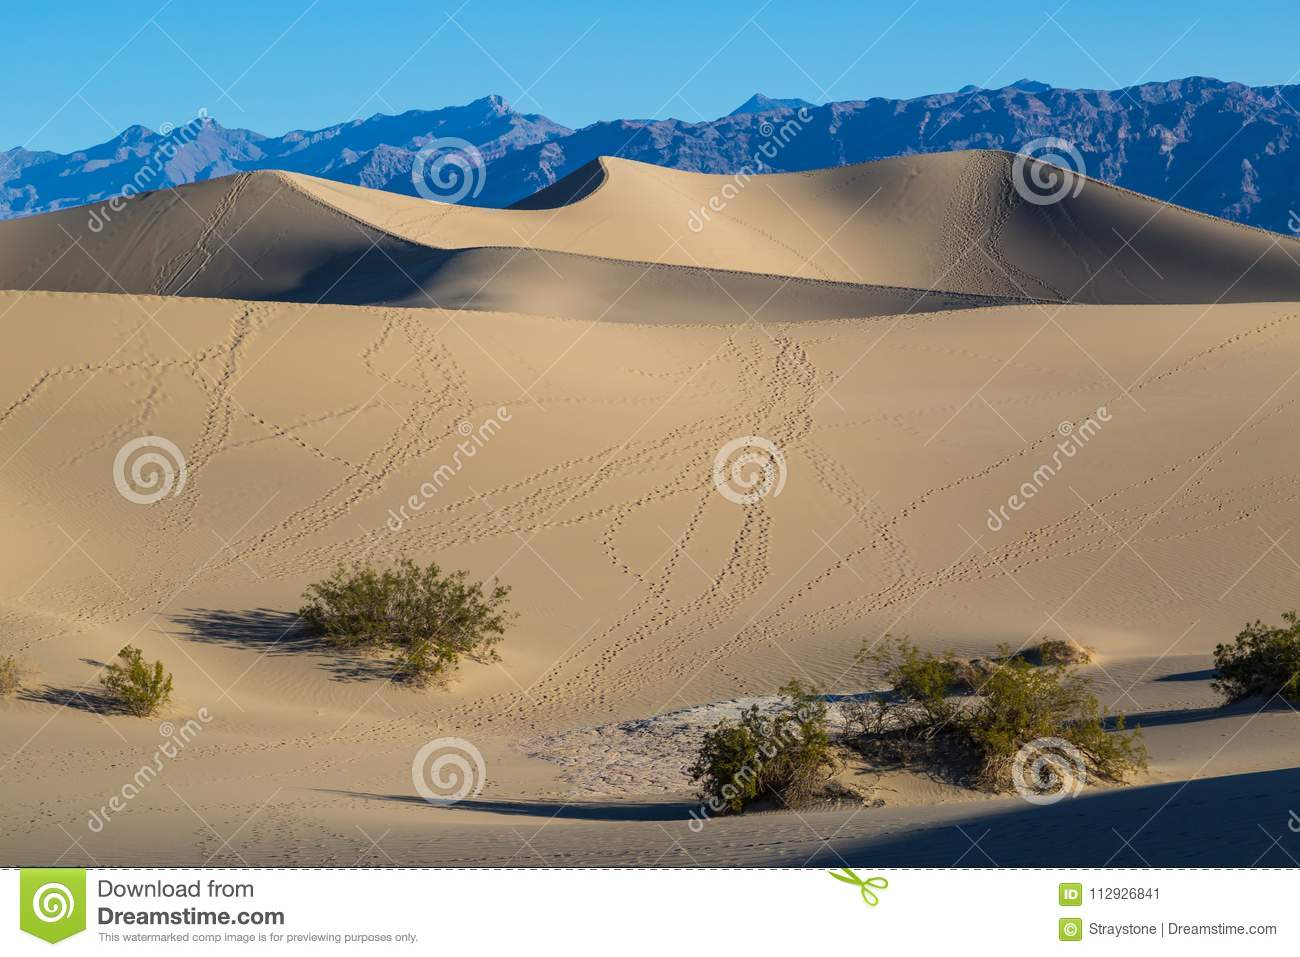 Spring Comes To Dunes >> Death Valley Morning At The Mesquite Flat Sand Dunes Stock Image